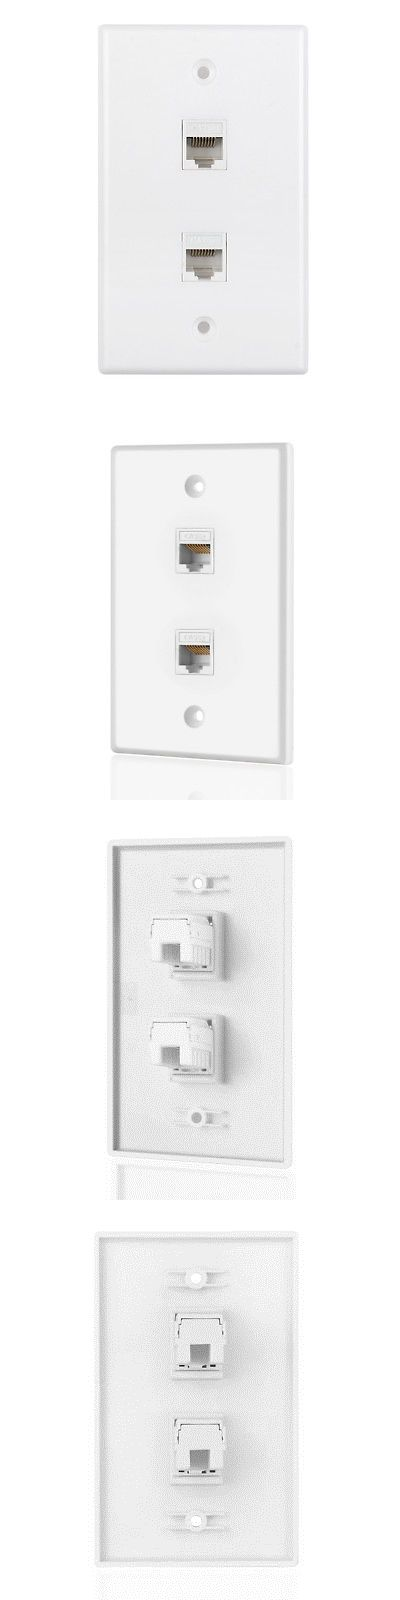 Details About Ethernet Network Wall Plate Rj45 Socket Port Wiring Plug Jack Outlet Mount Panel Plates On Wall Wall Jack Wall